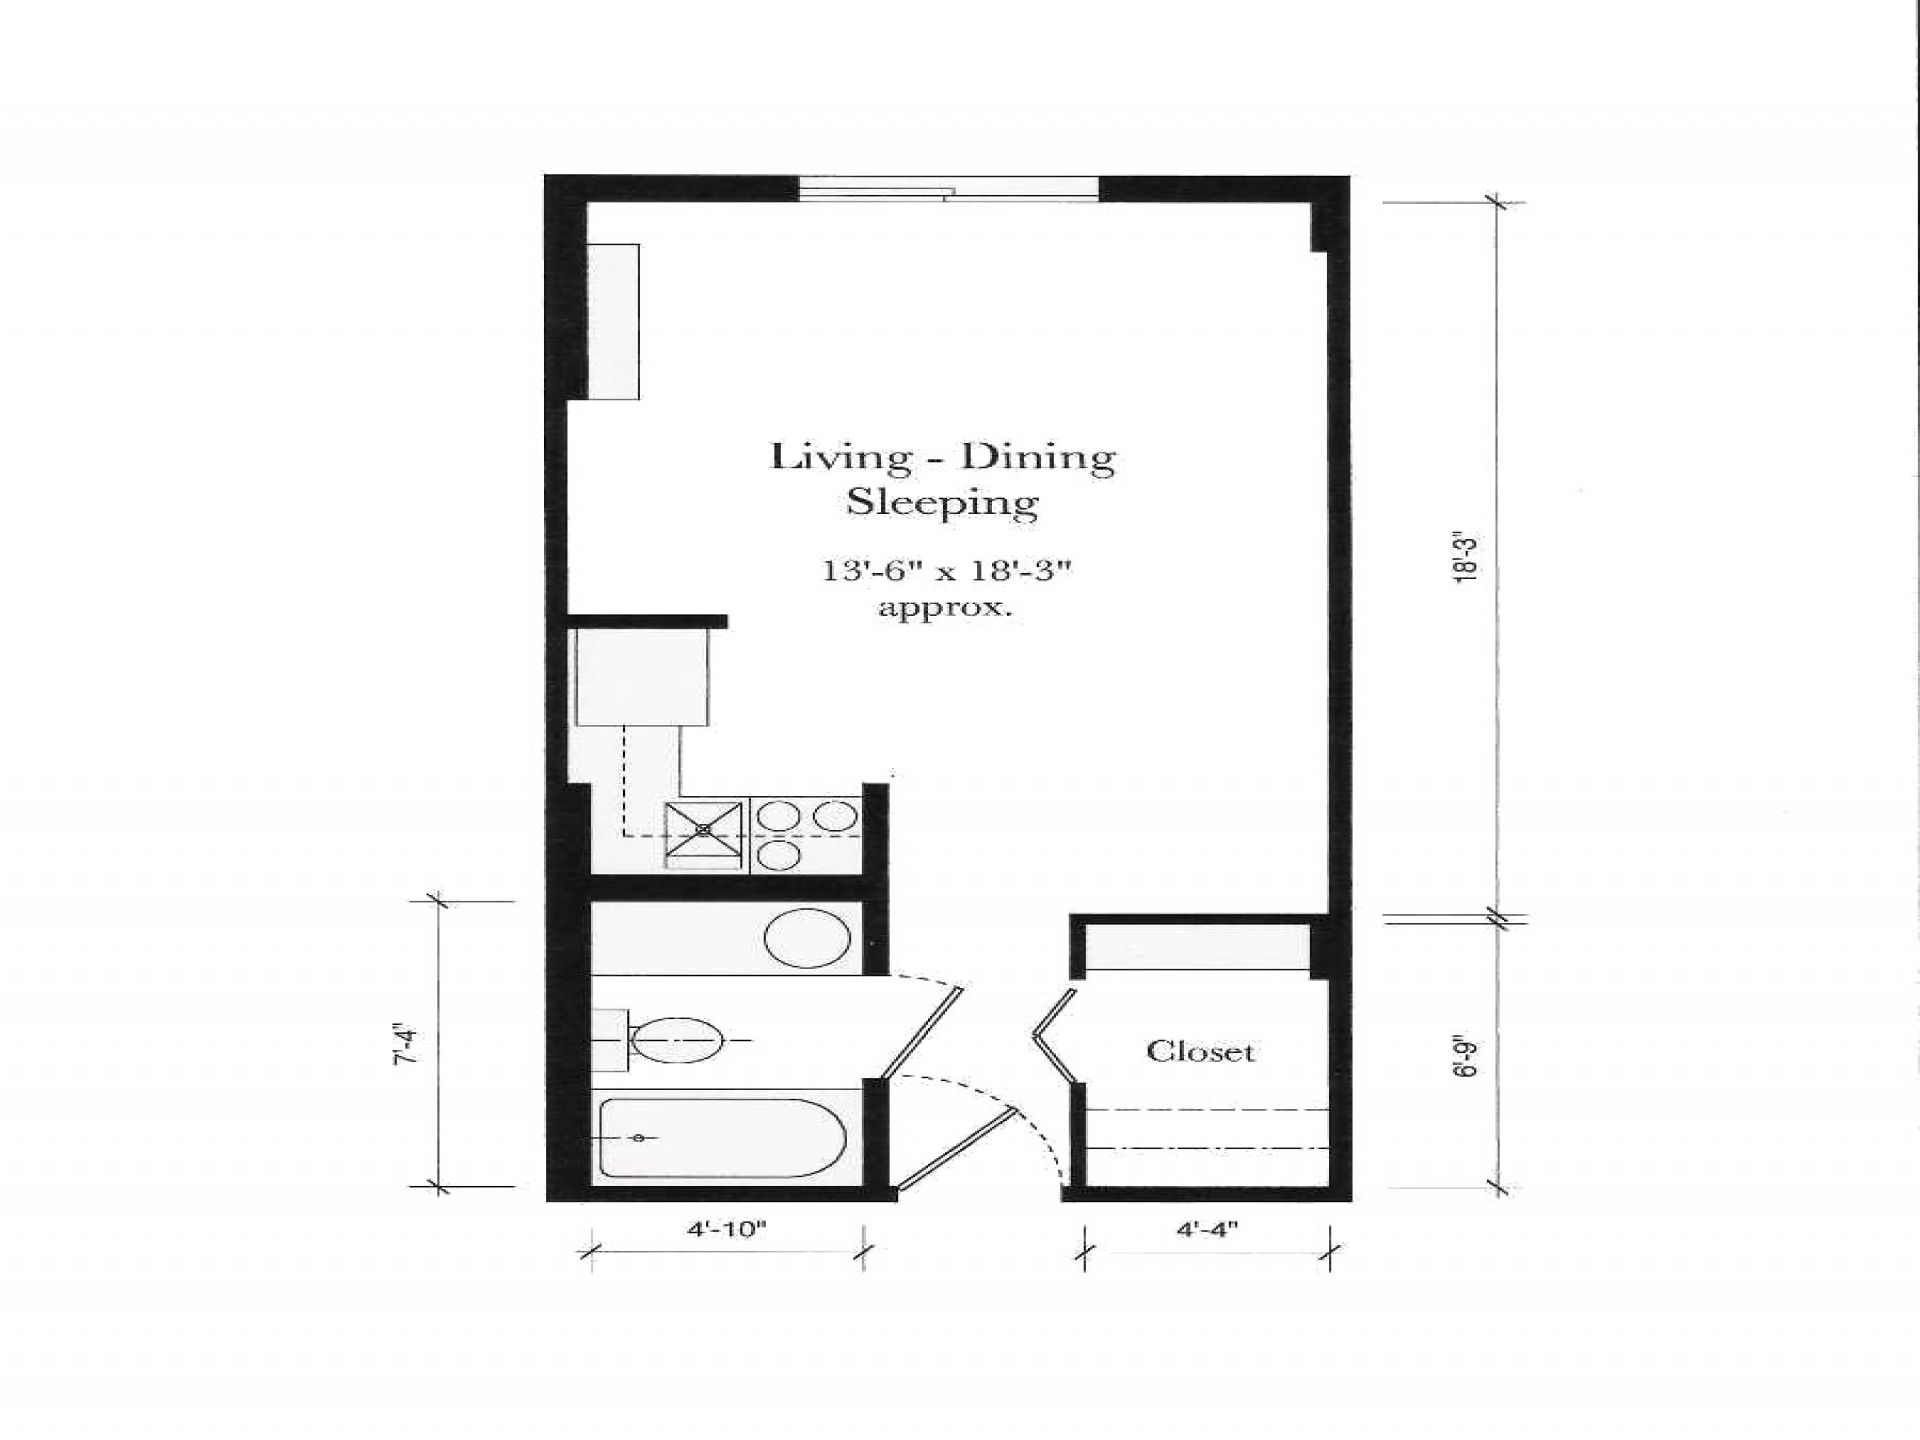 Apartment Floor Plans Designs Images Design Inspiration